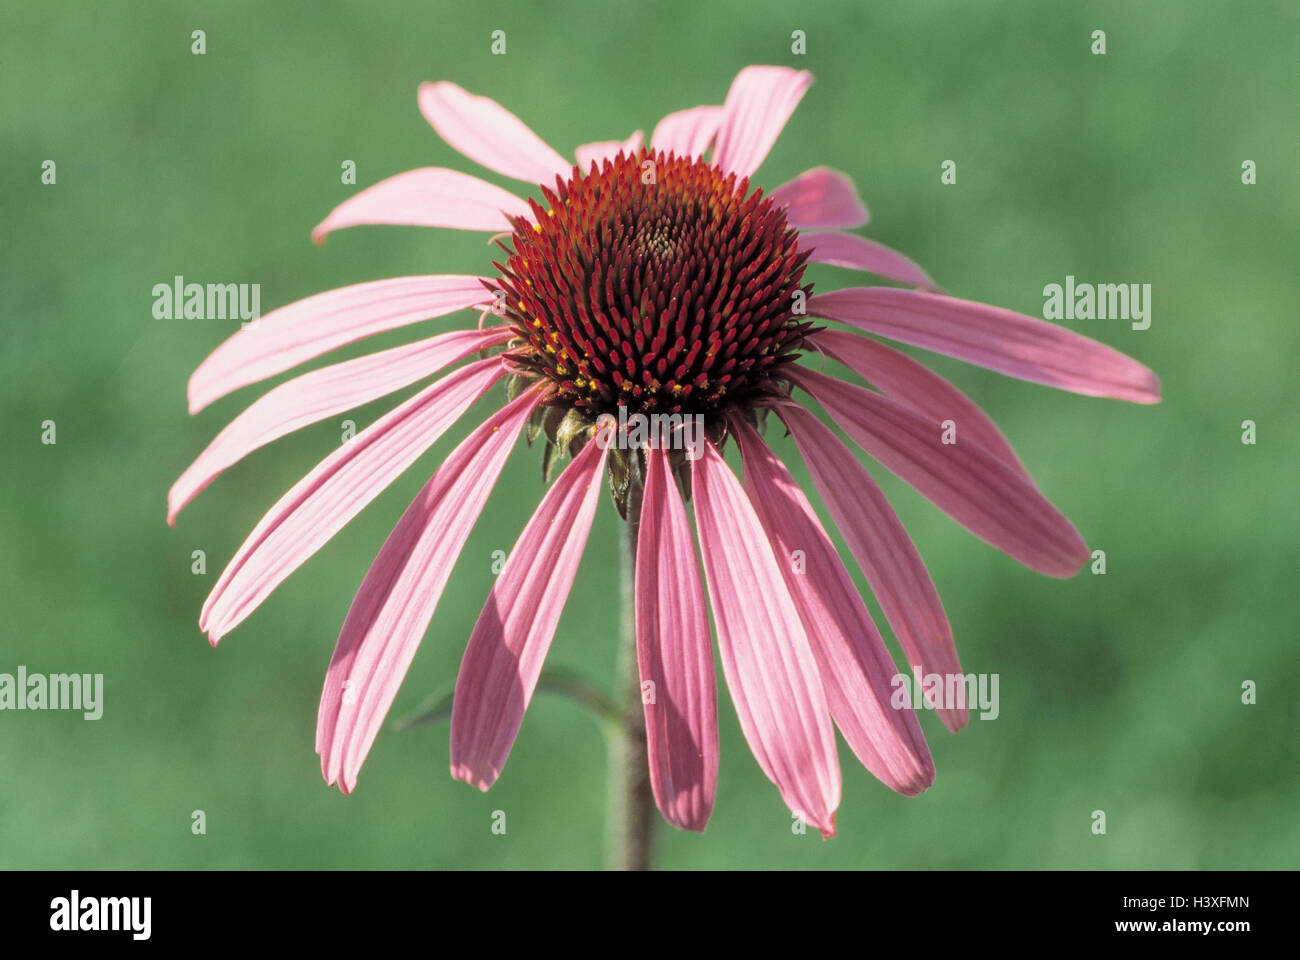 Medicinal plants, red solar hat, Echinacea purpurea, detail, blossom plants, medicinal plants, herbs, medicament Stock Photo